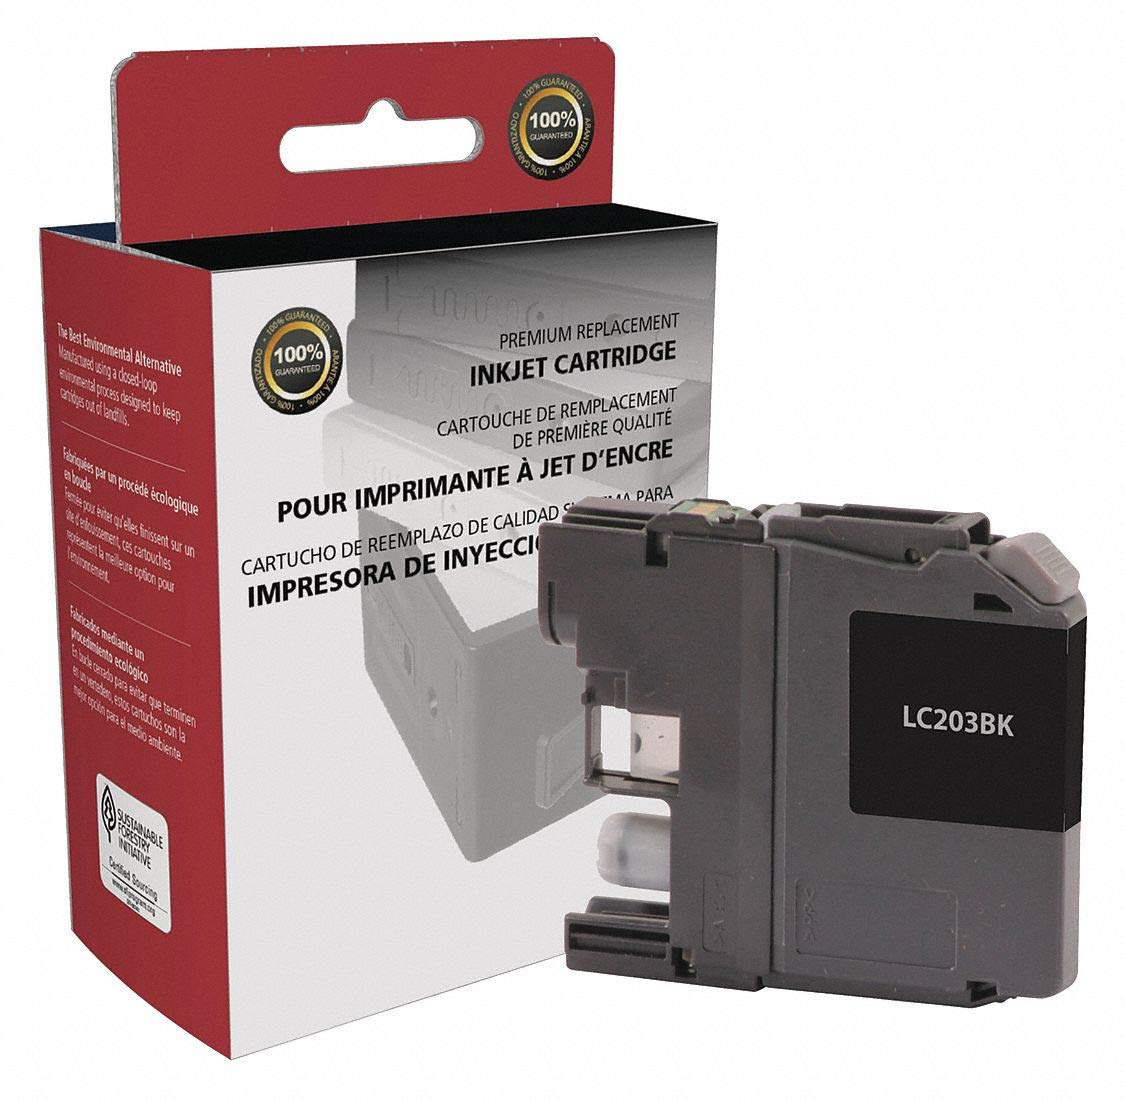 Amazon.com: Clover Brother Ink Cartridge, No. LC203, Black ...